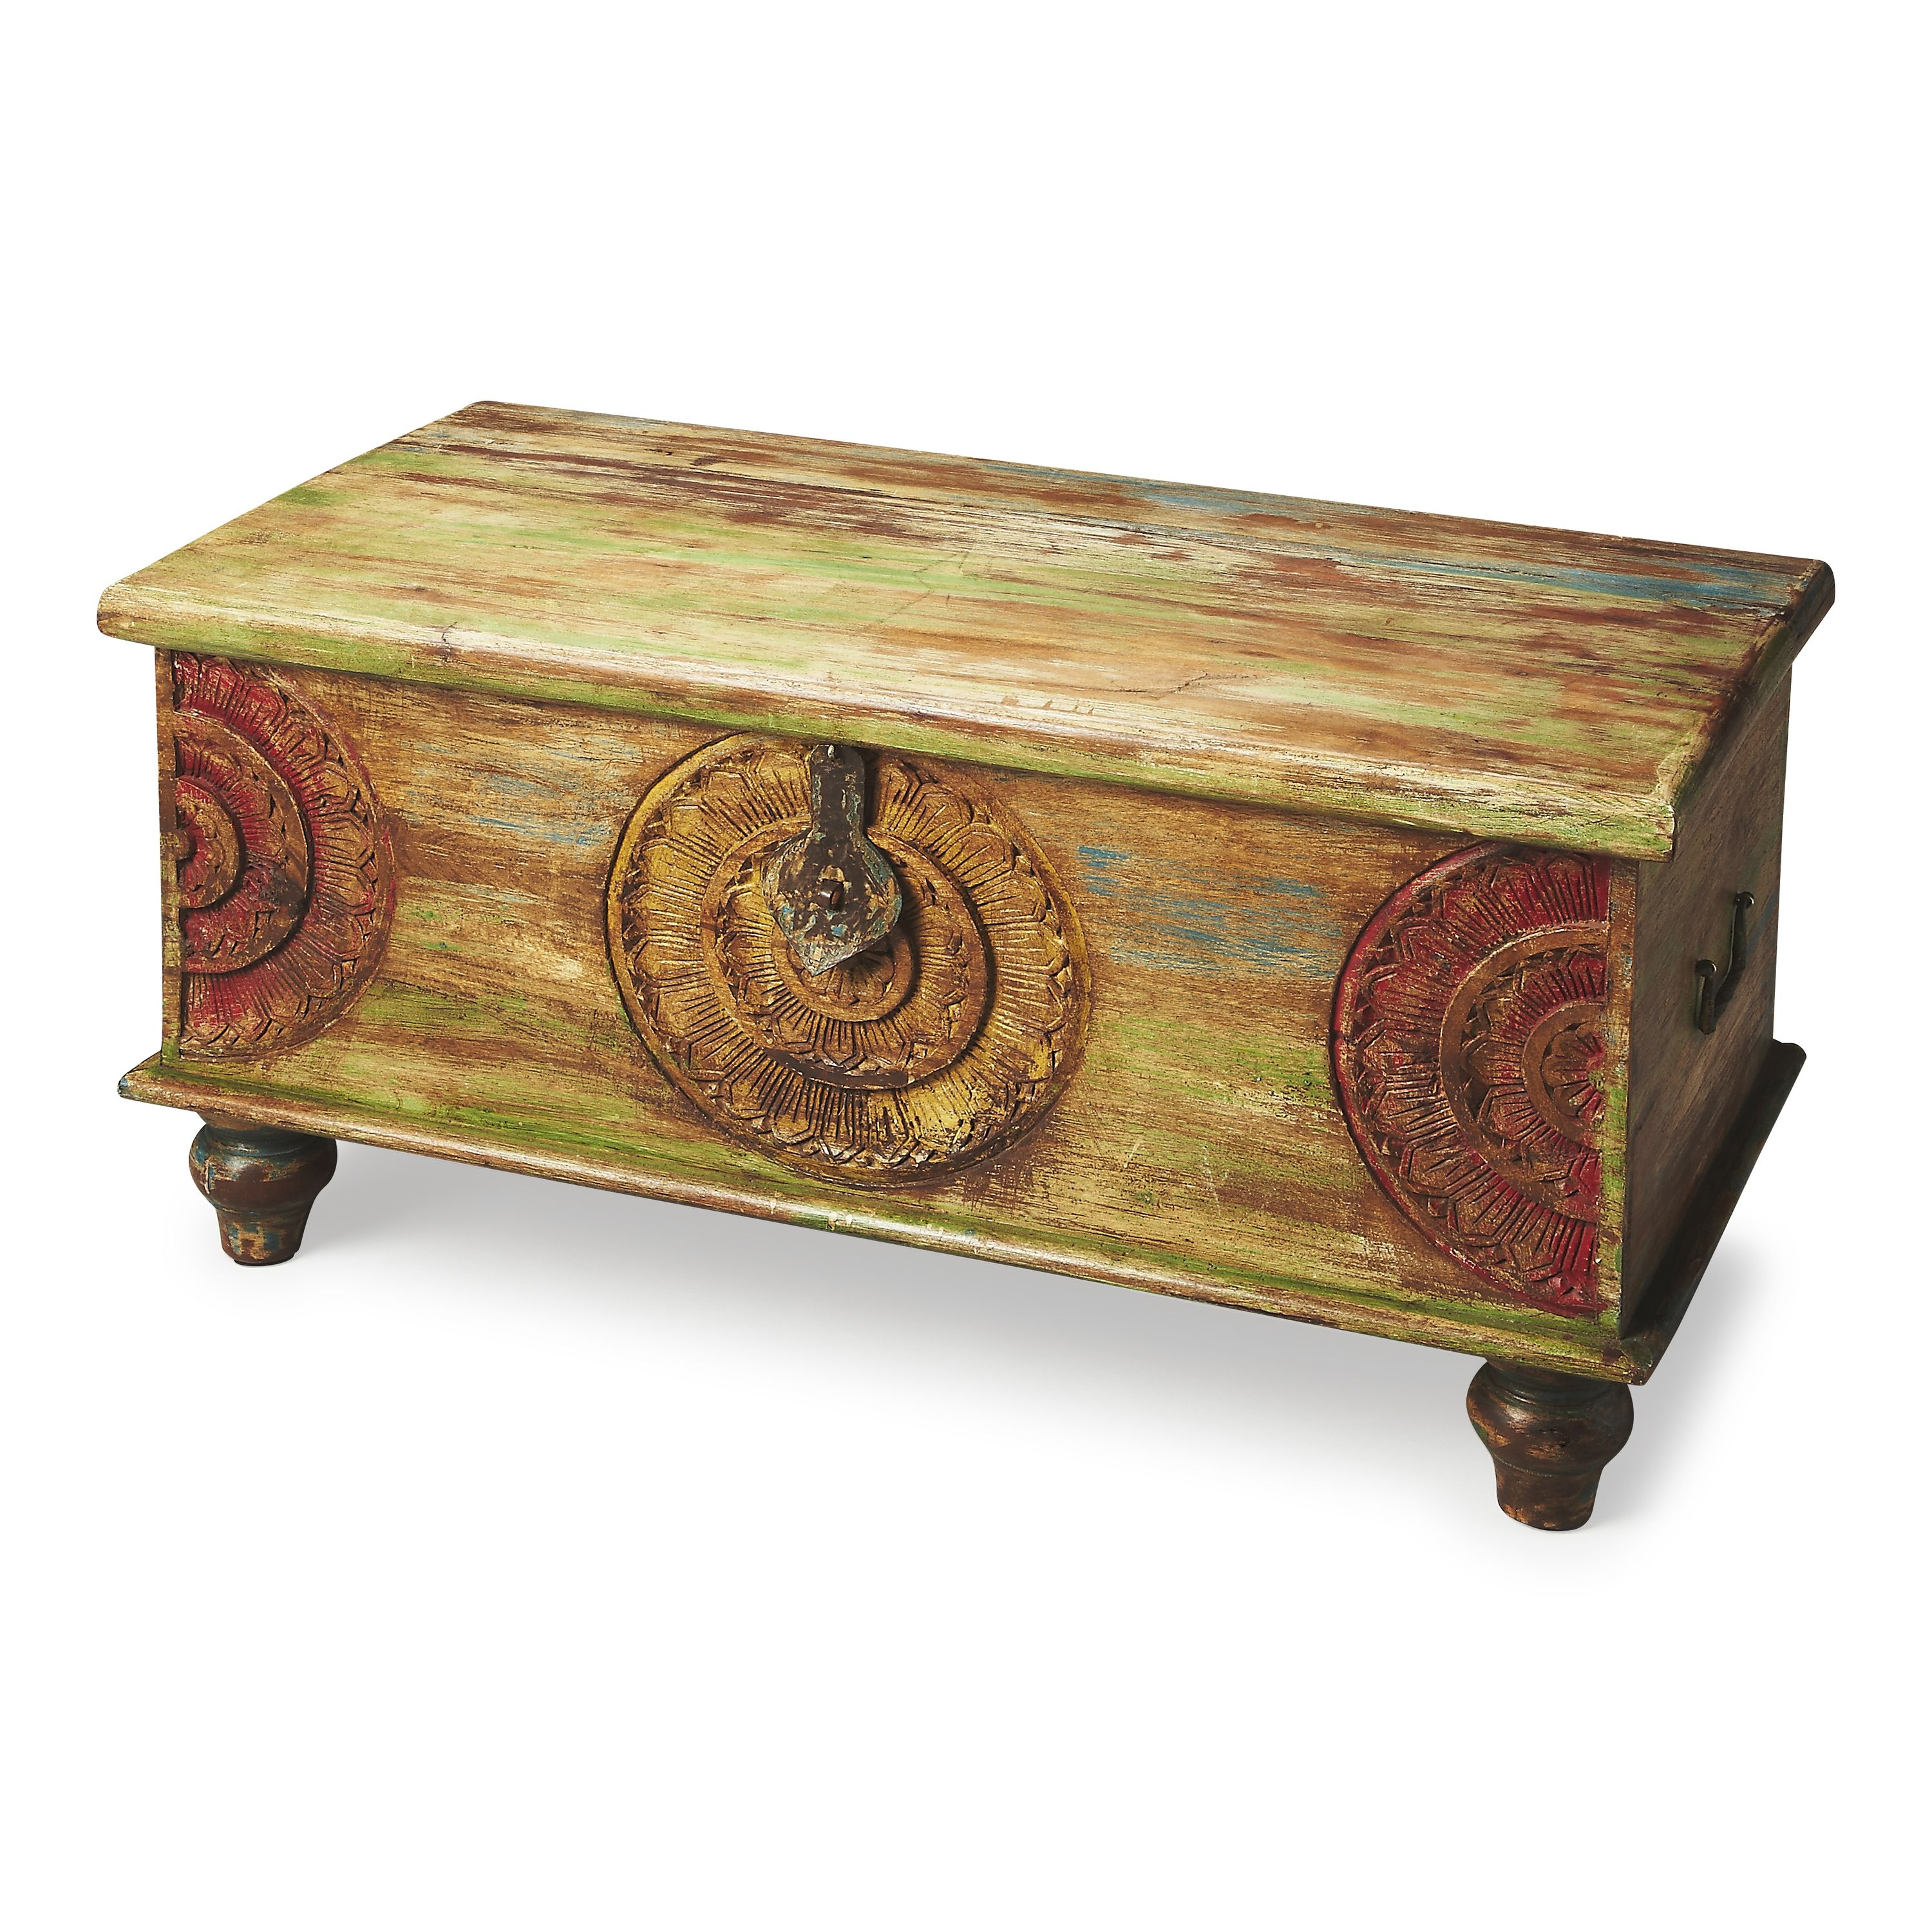 Butler Mesa Carved Wood Trunk Coffee Table